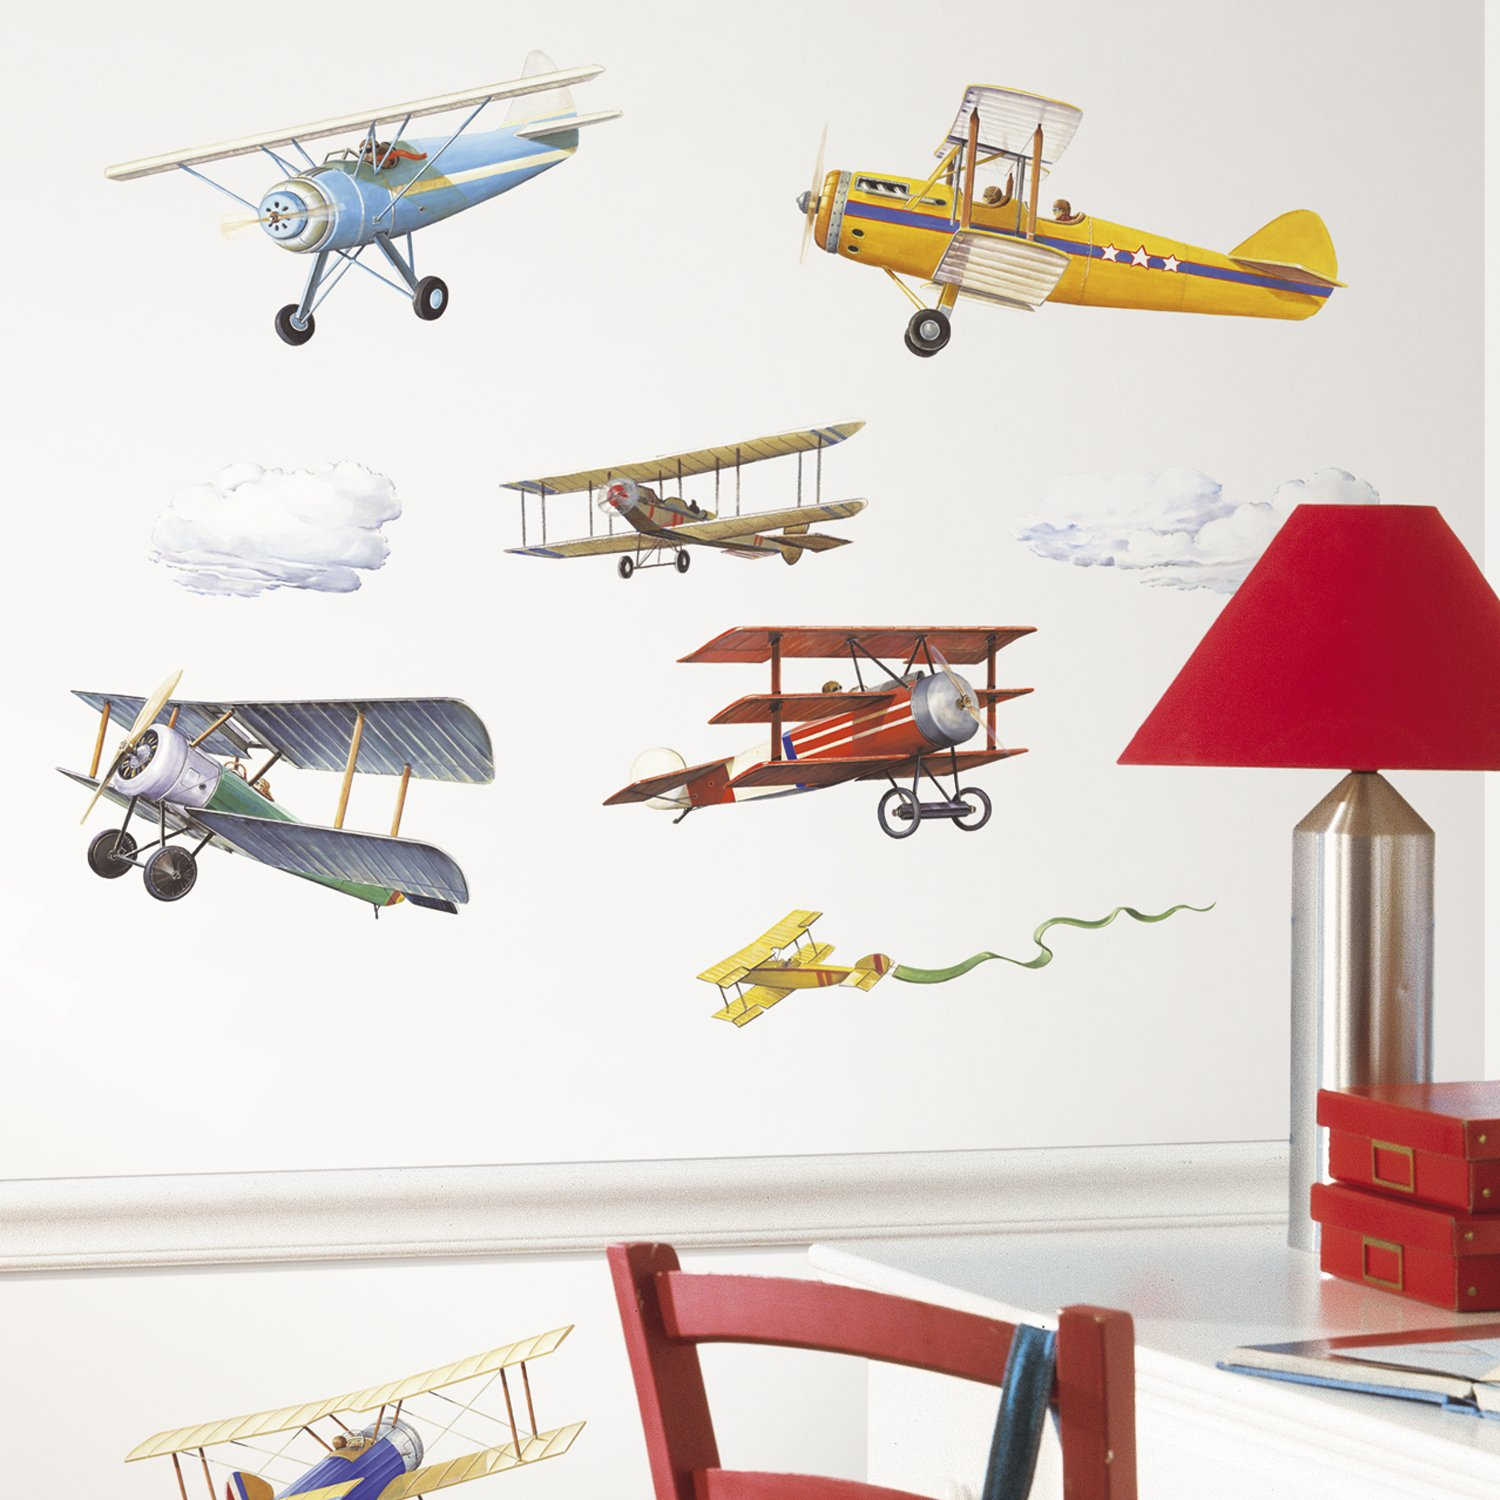 Roommates rmk1197scs vintage planes peel stick wall decals 22 roommates rmk1197scs vintage planes peel stick wall decals 22 count wall decor stickers amazon amipublicfo Image collections